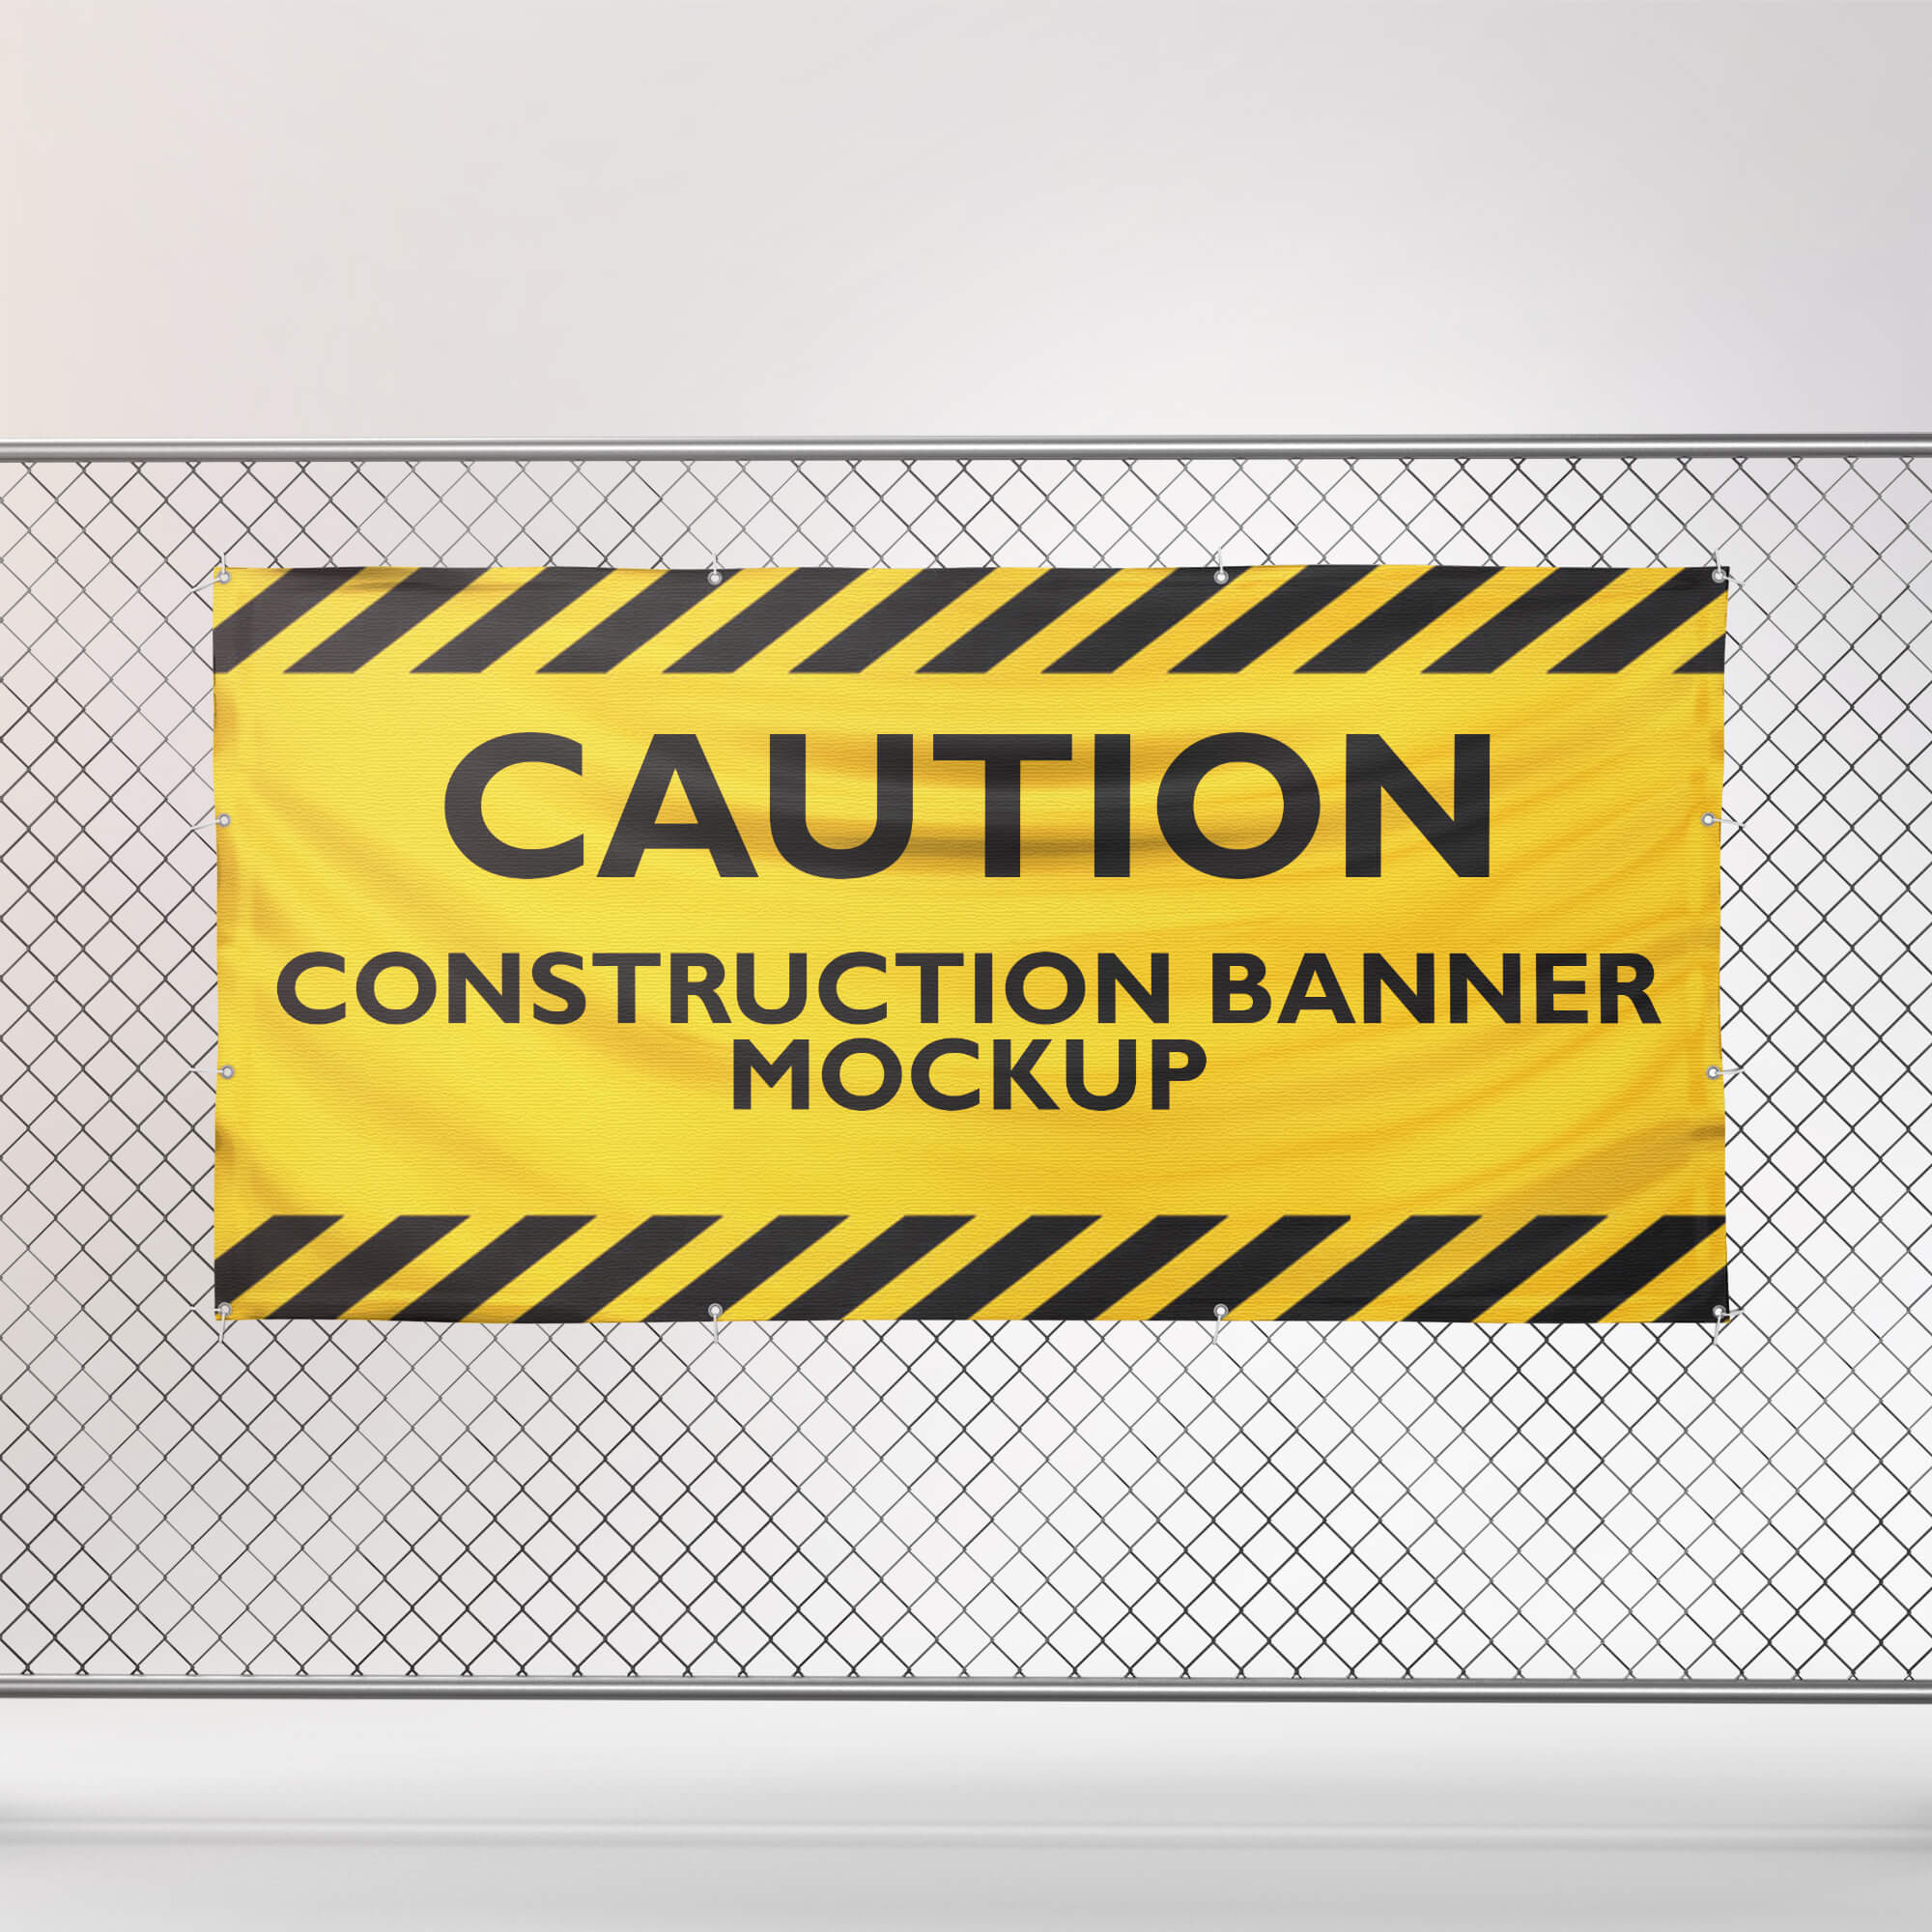 Design Free Construction Banner Mockup PSD Template